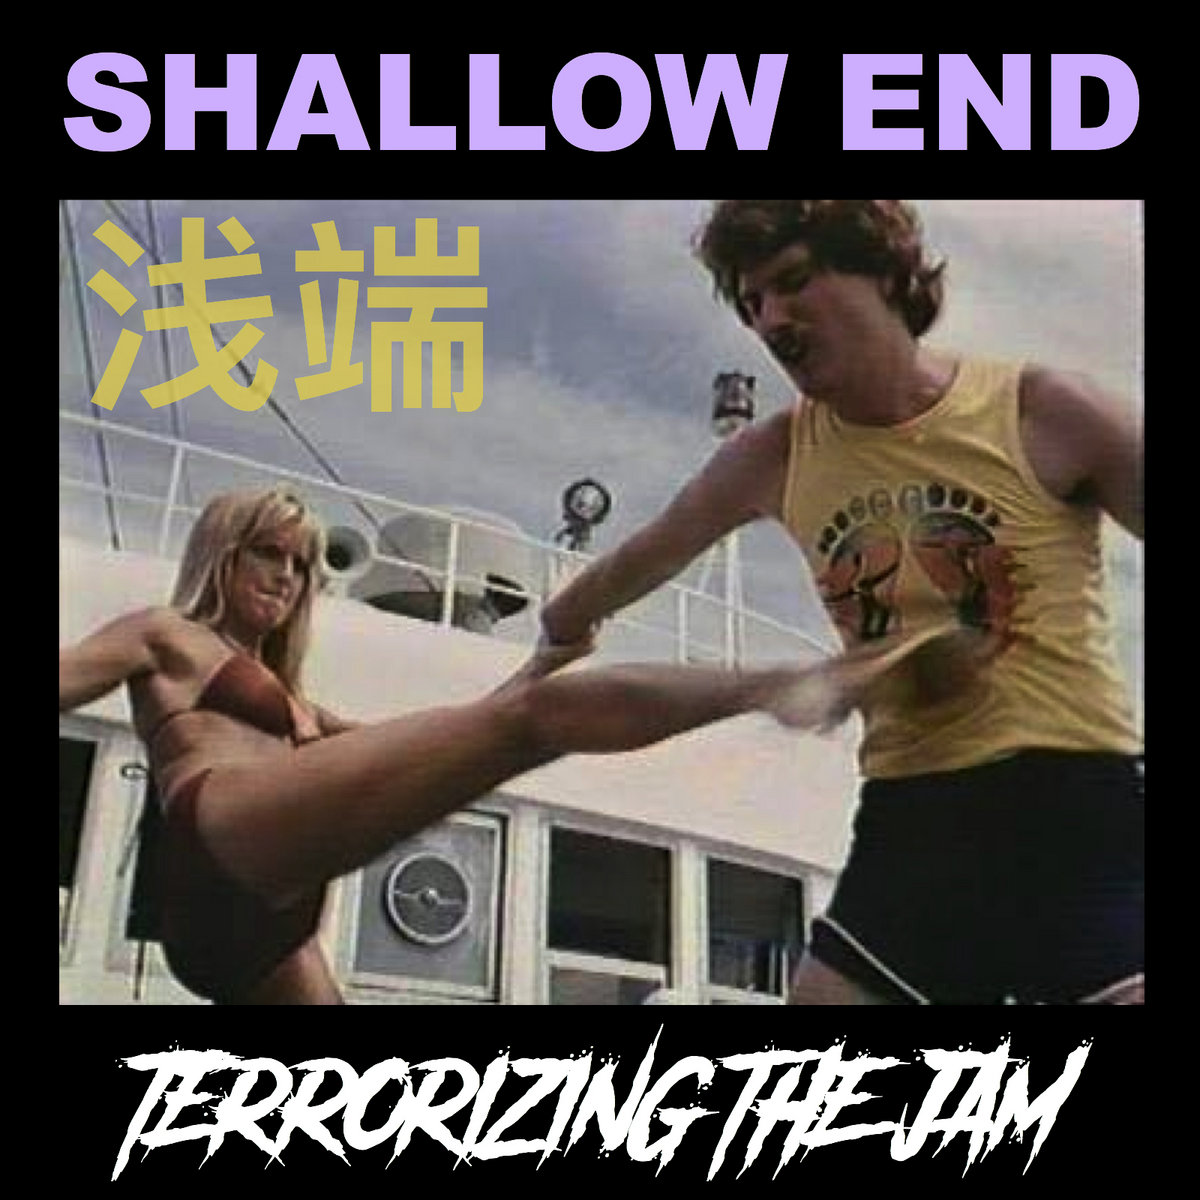 Shallow End - Terrorizing the Jam [EP] (2017)